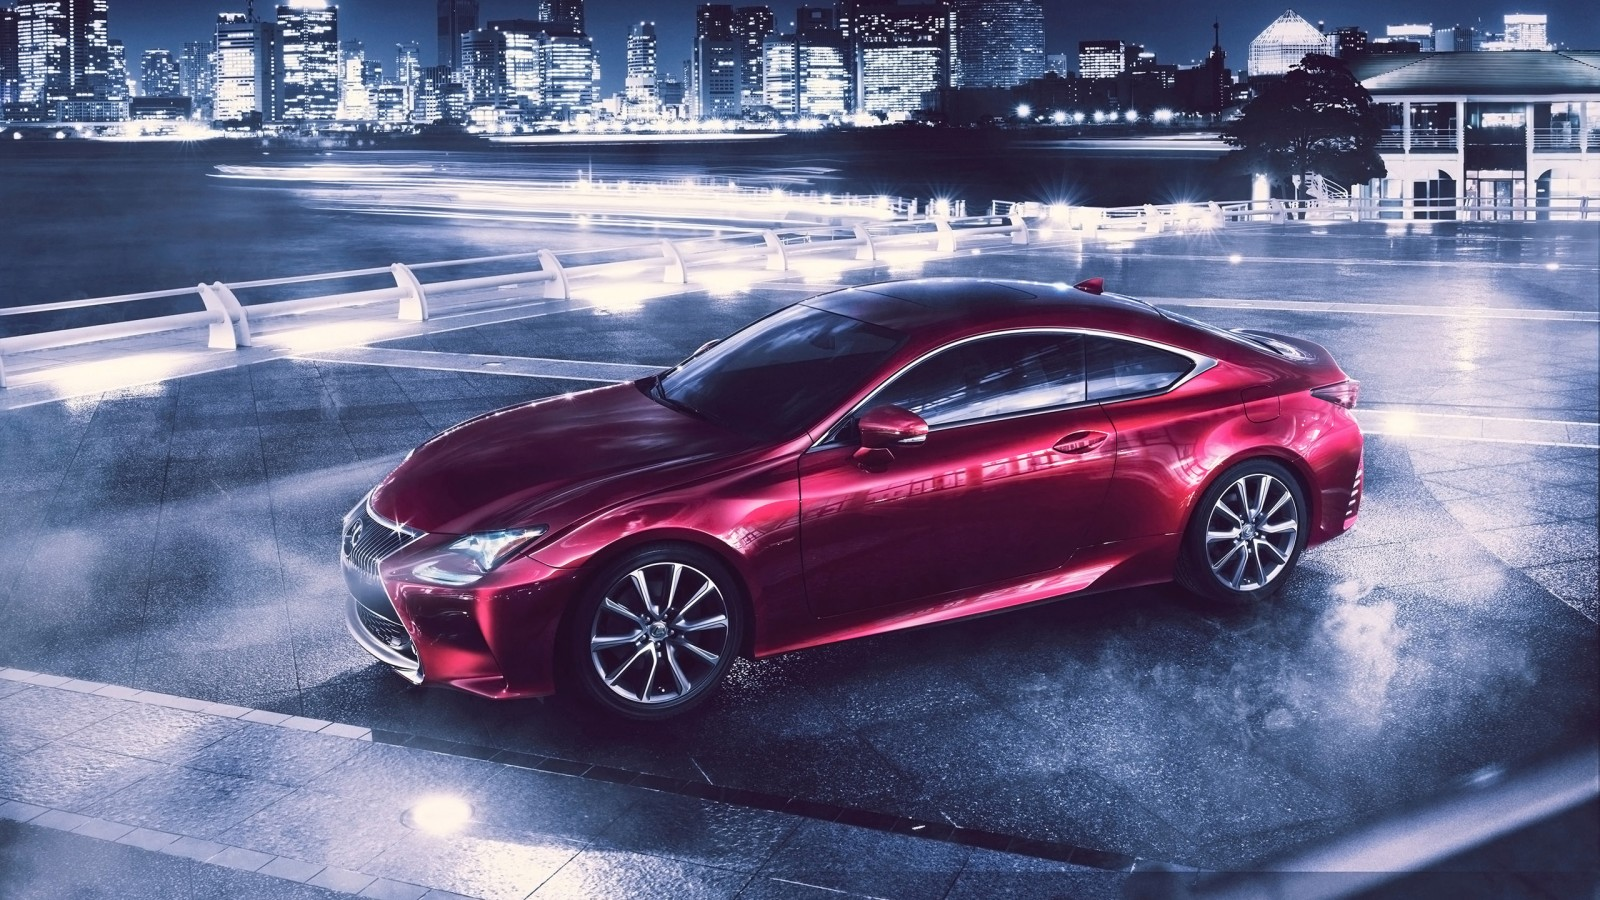 2014 Lexus RC Coupe 3 Wallpaper | HD Car Wallpapers | ID #3935